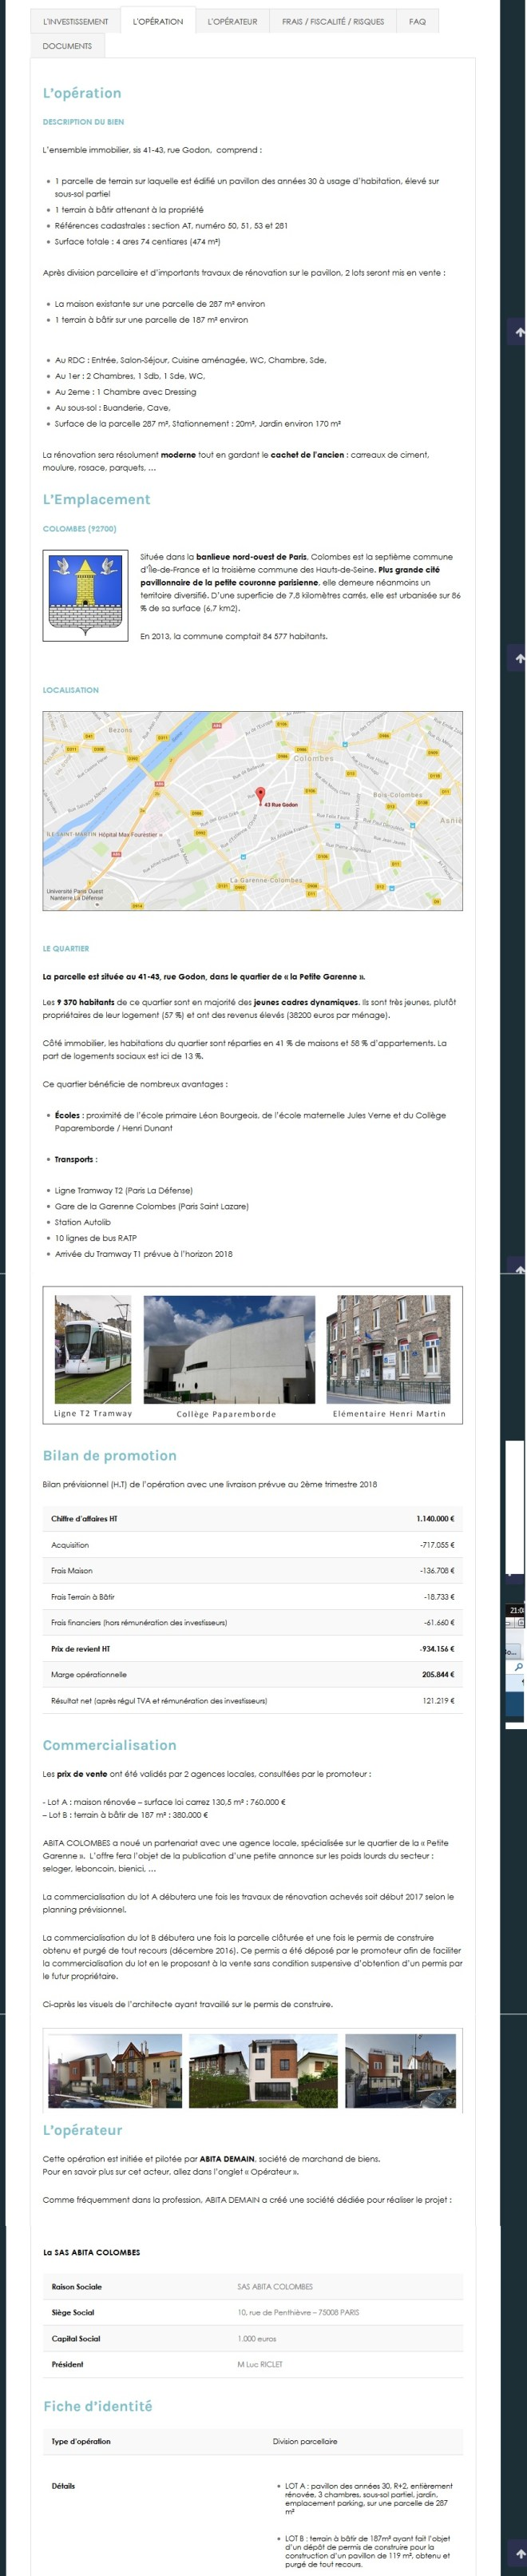 immocratie-crowdfunding-crowdlending-immobilier-projet-03